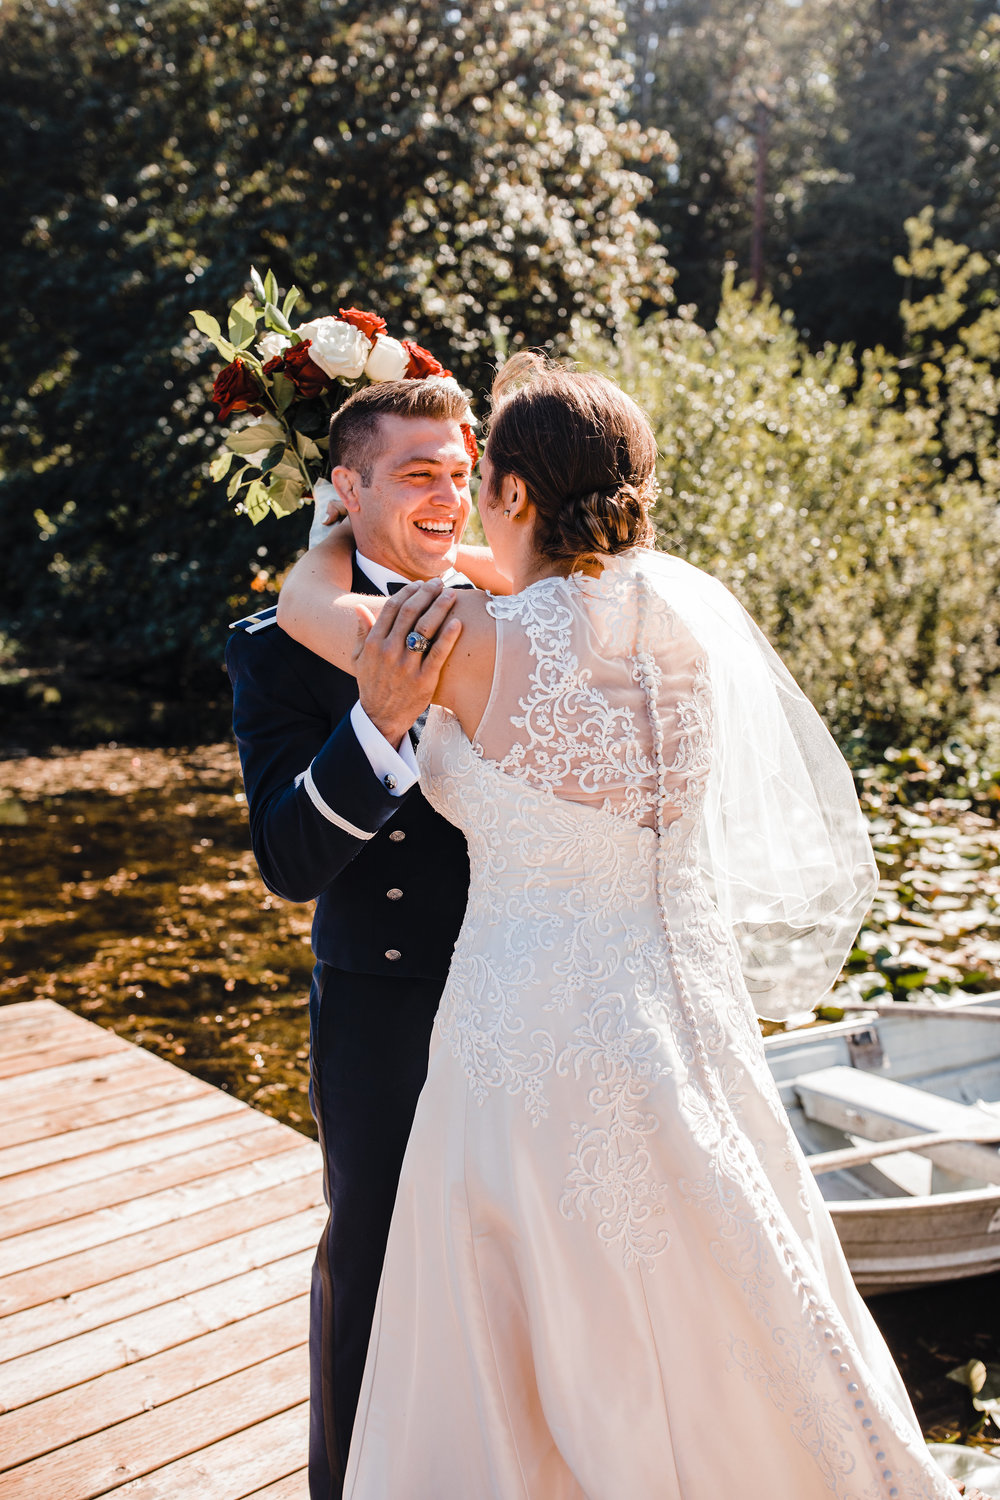 best wedding photographer in olympia washington first look happy hugging smiling military wedding